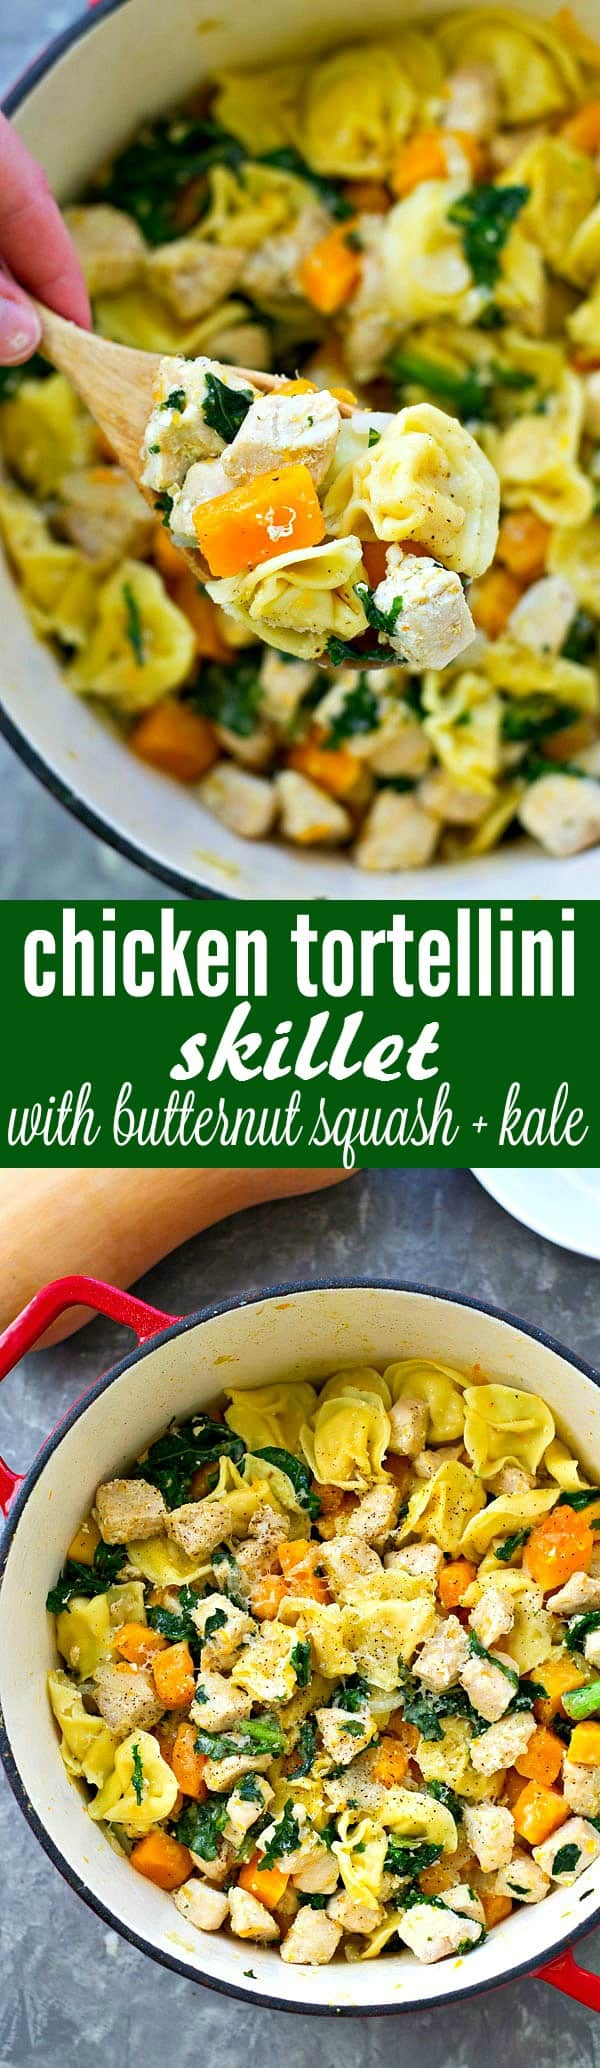 Packed with cheese tortellini, chicken, and lots of butternut squash and fresh kale, this healthier tortellini skillet is an entire easy dinner-in-one that your family won't be able to get enough of!